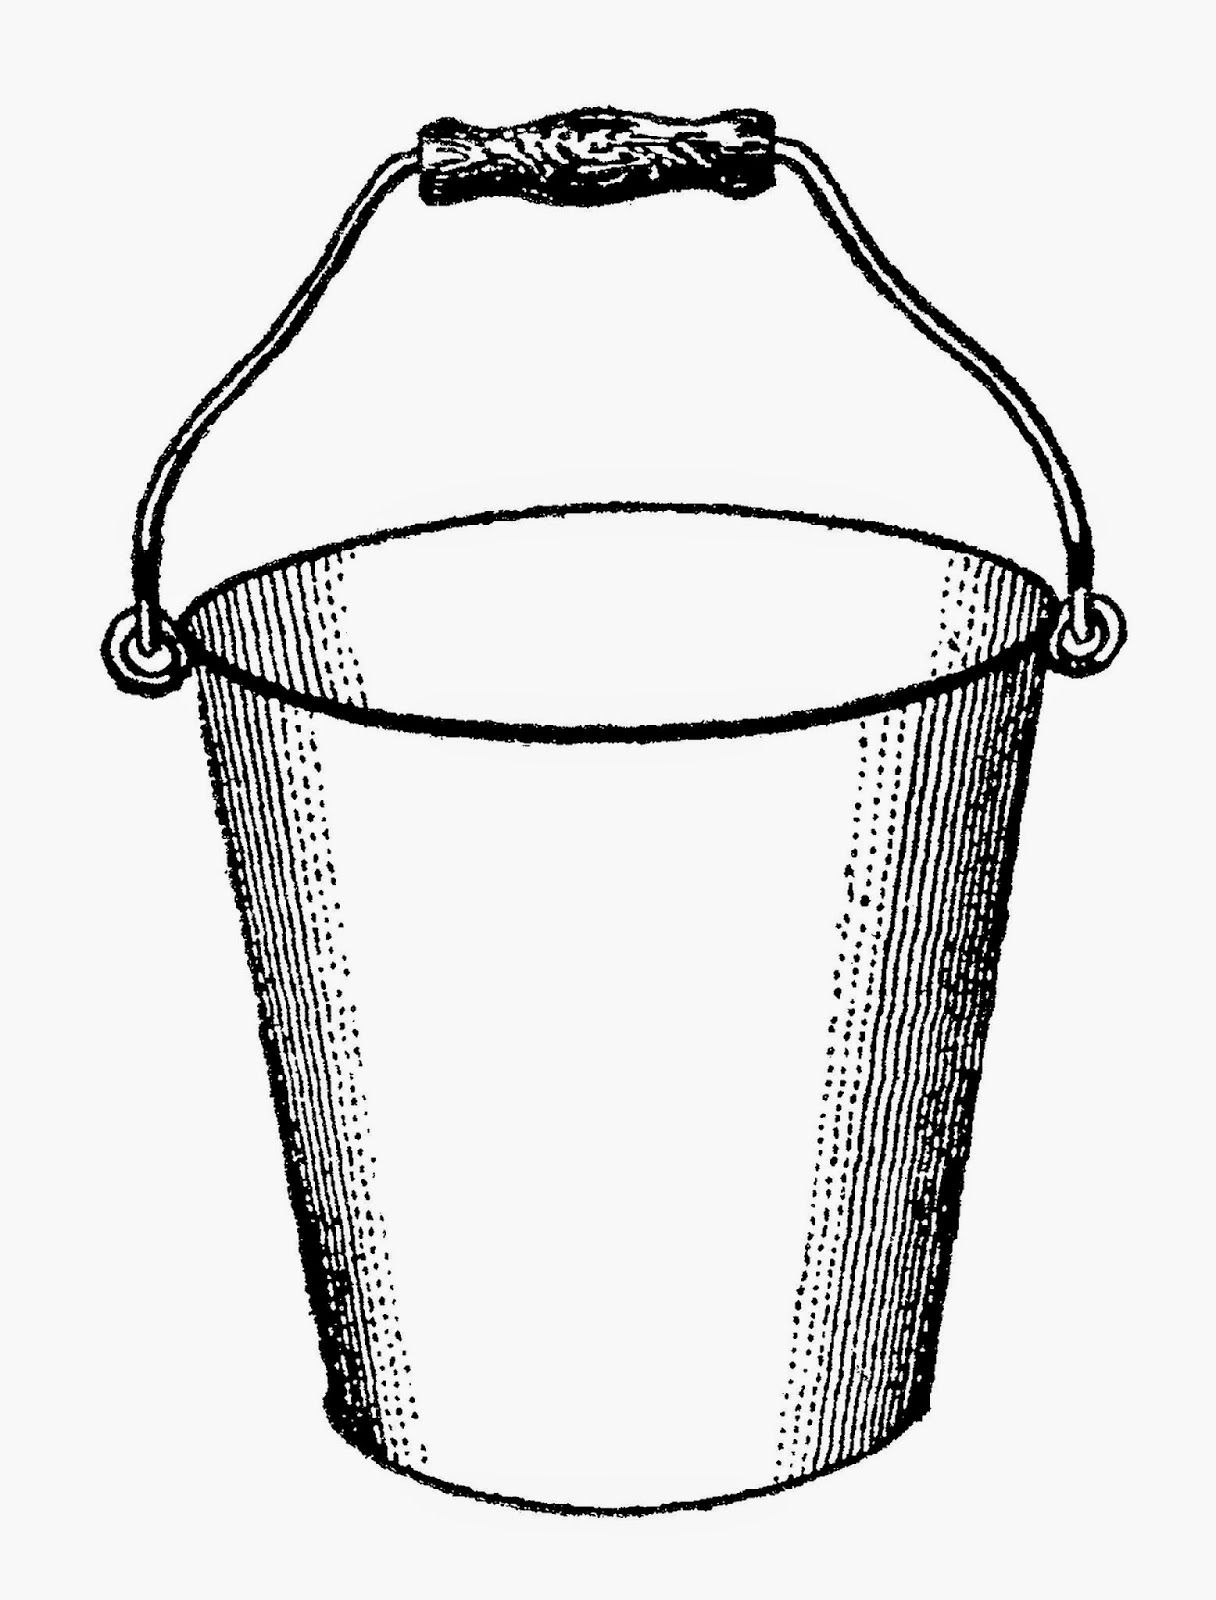 Antique Images Free Printable Digital Transfer Of Gardening Clip Art Water Bucket